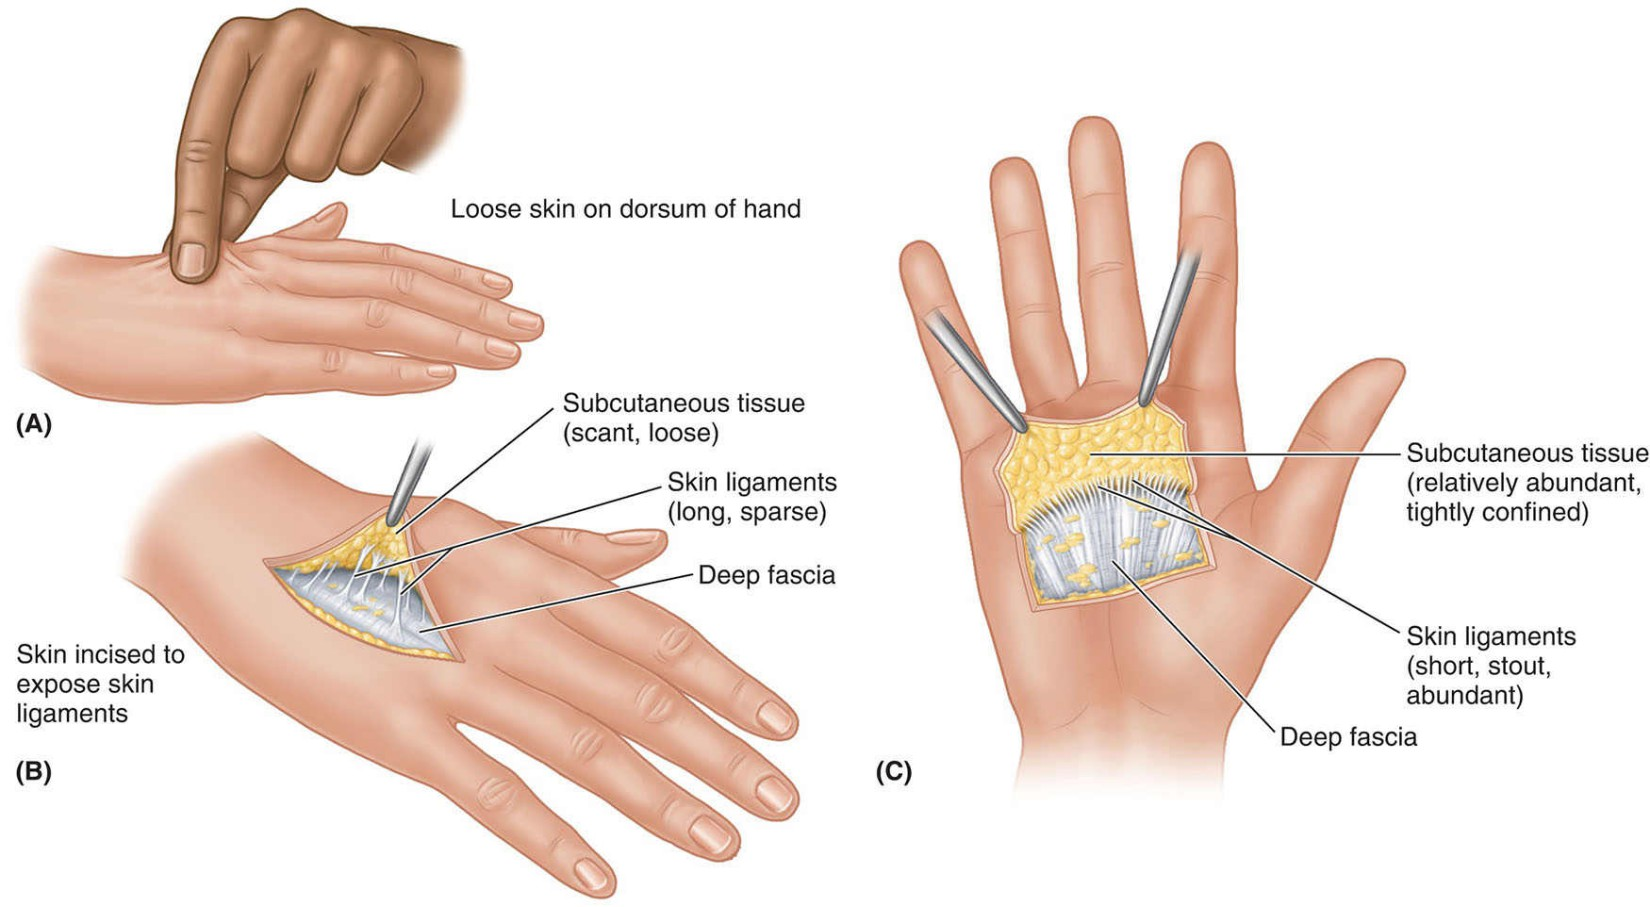 Skin Ligaments In Subcutaneous Tissue